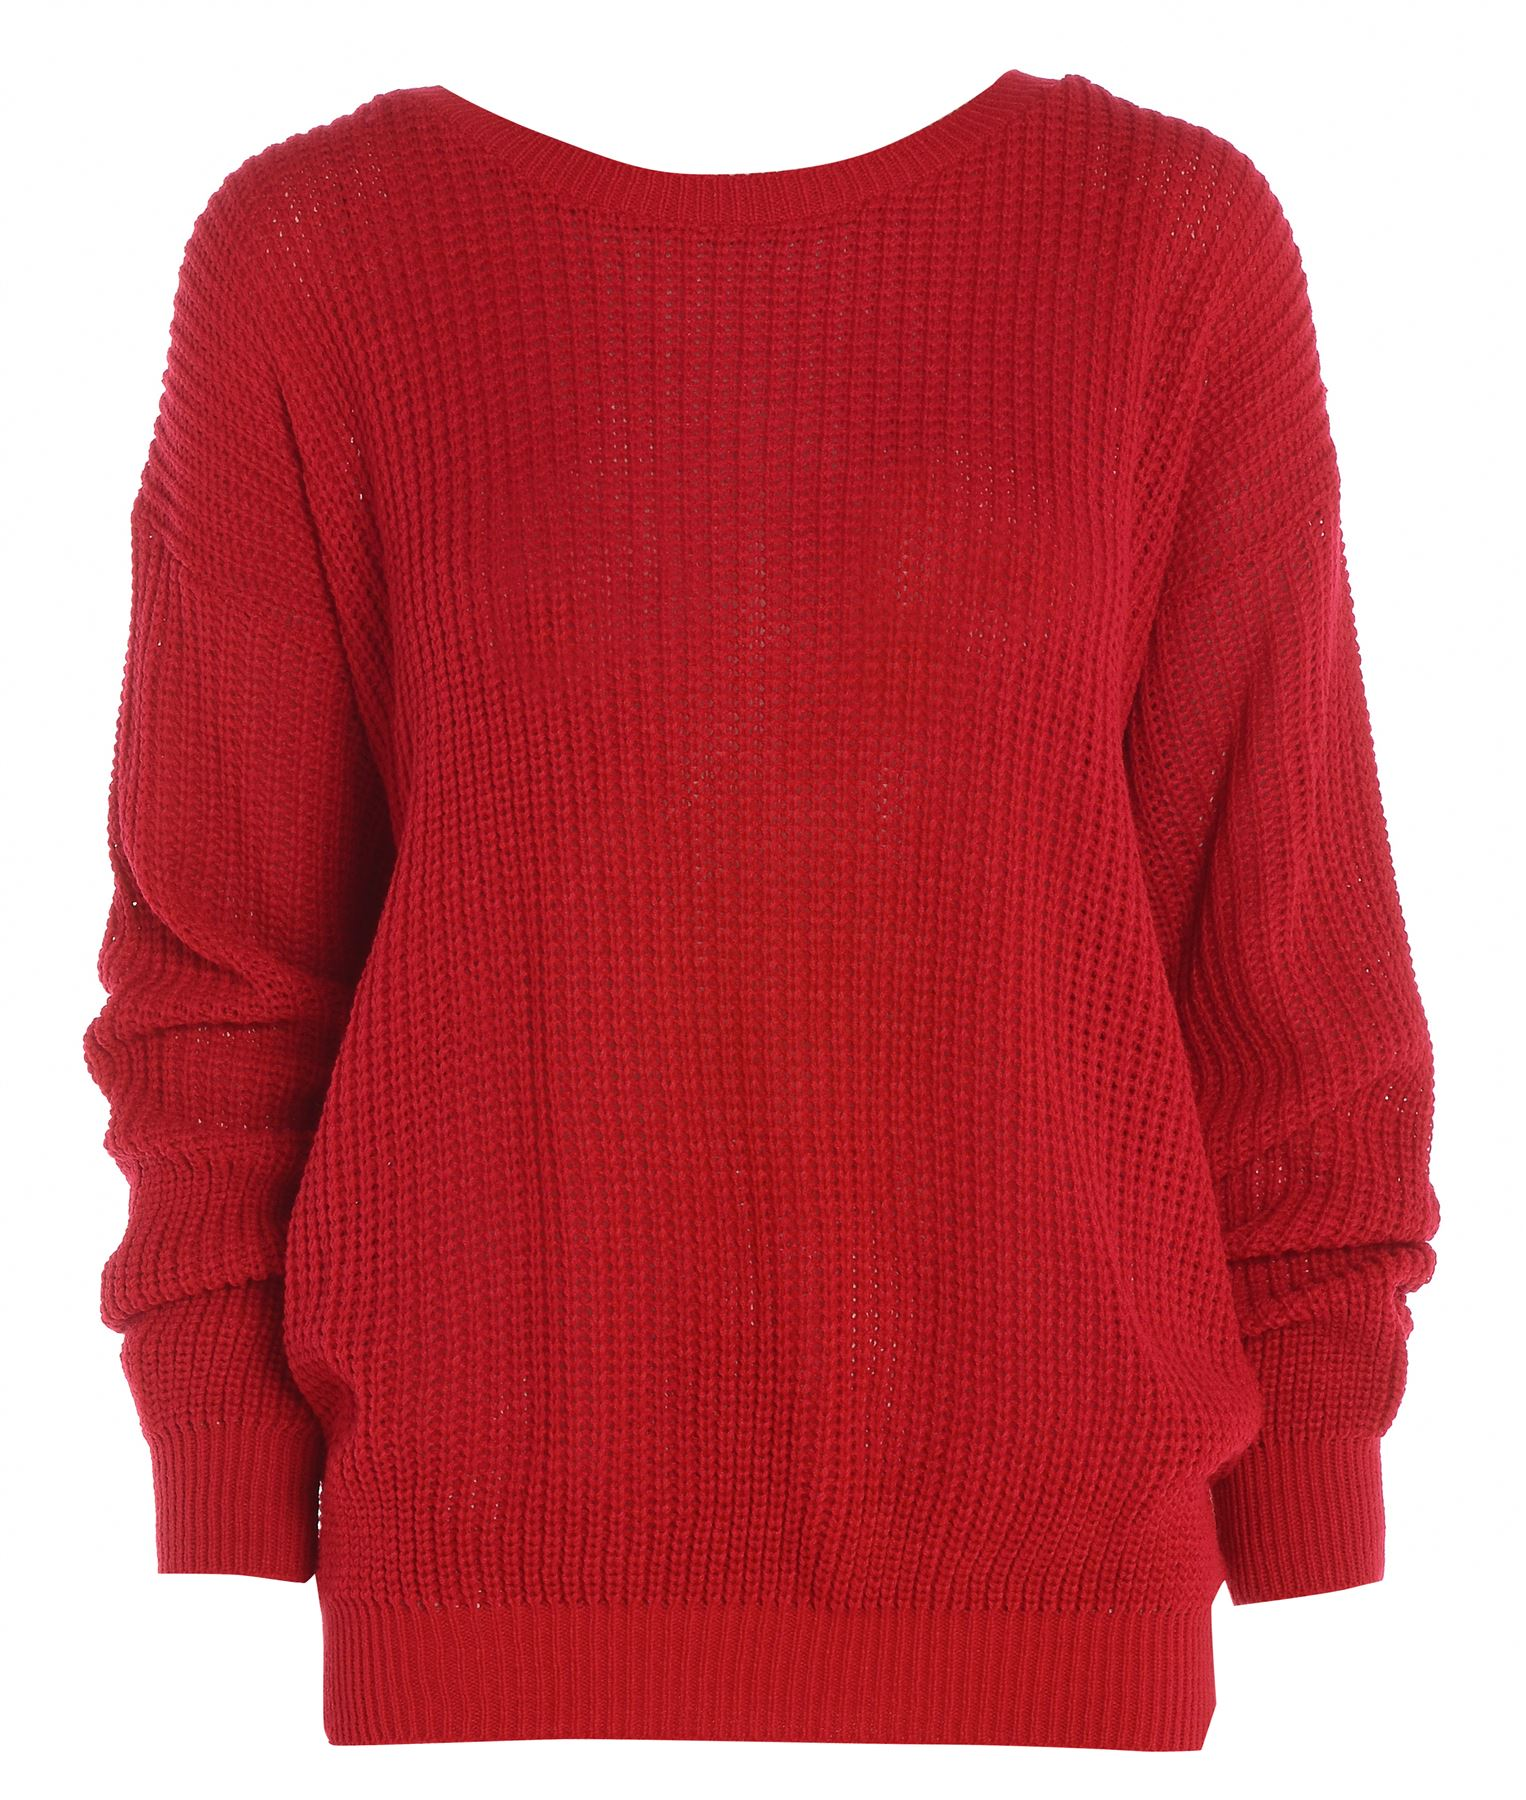 Traditionally women's cheap sweaters have been worn for warmth and comfort, but in the last few decades, a new breed of sweater has become very popular. Rather than being knitted or crocheted of bulky yarn, they are made of soft, touchable, lightweight yarn with little of the bulkiness usually associated with the word